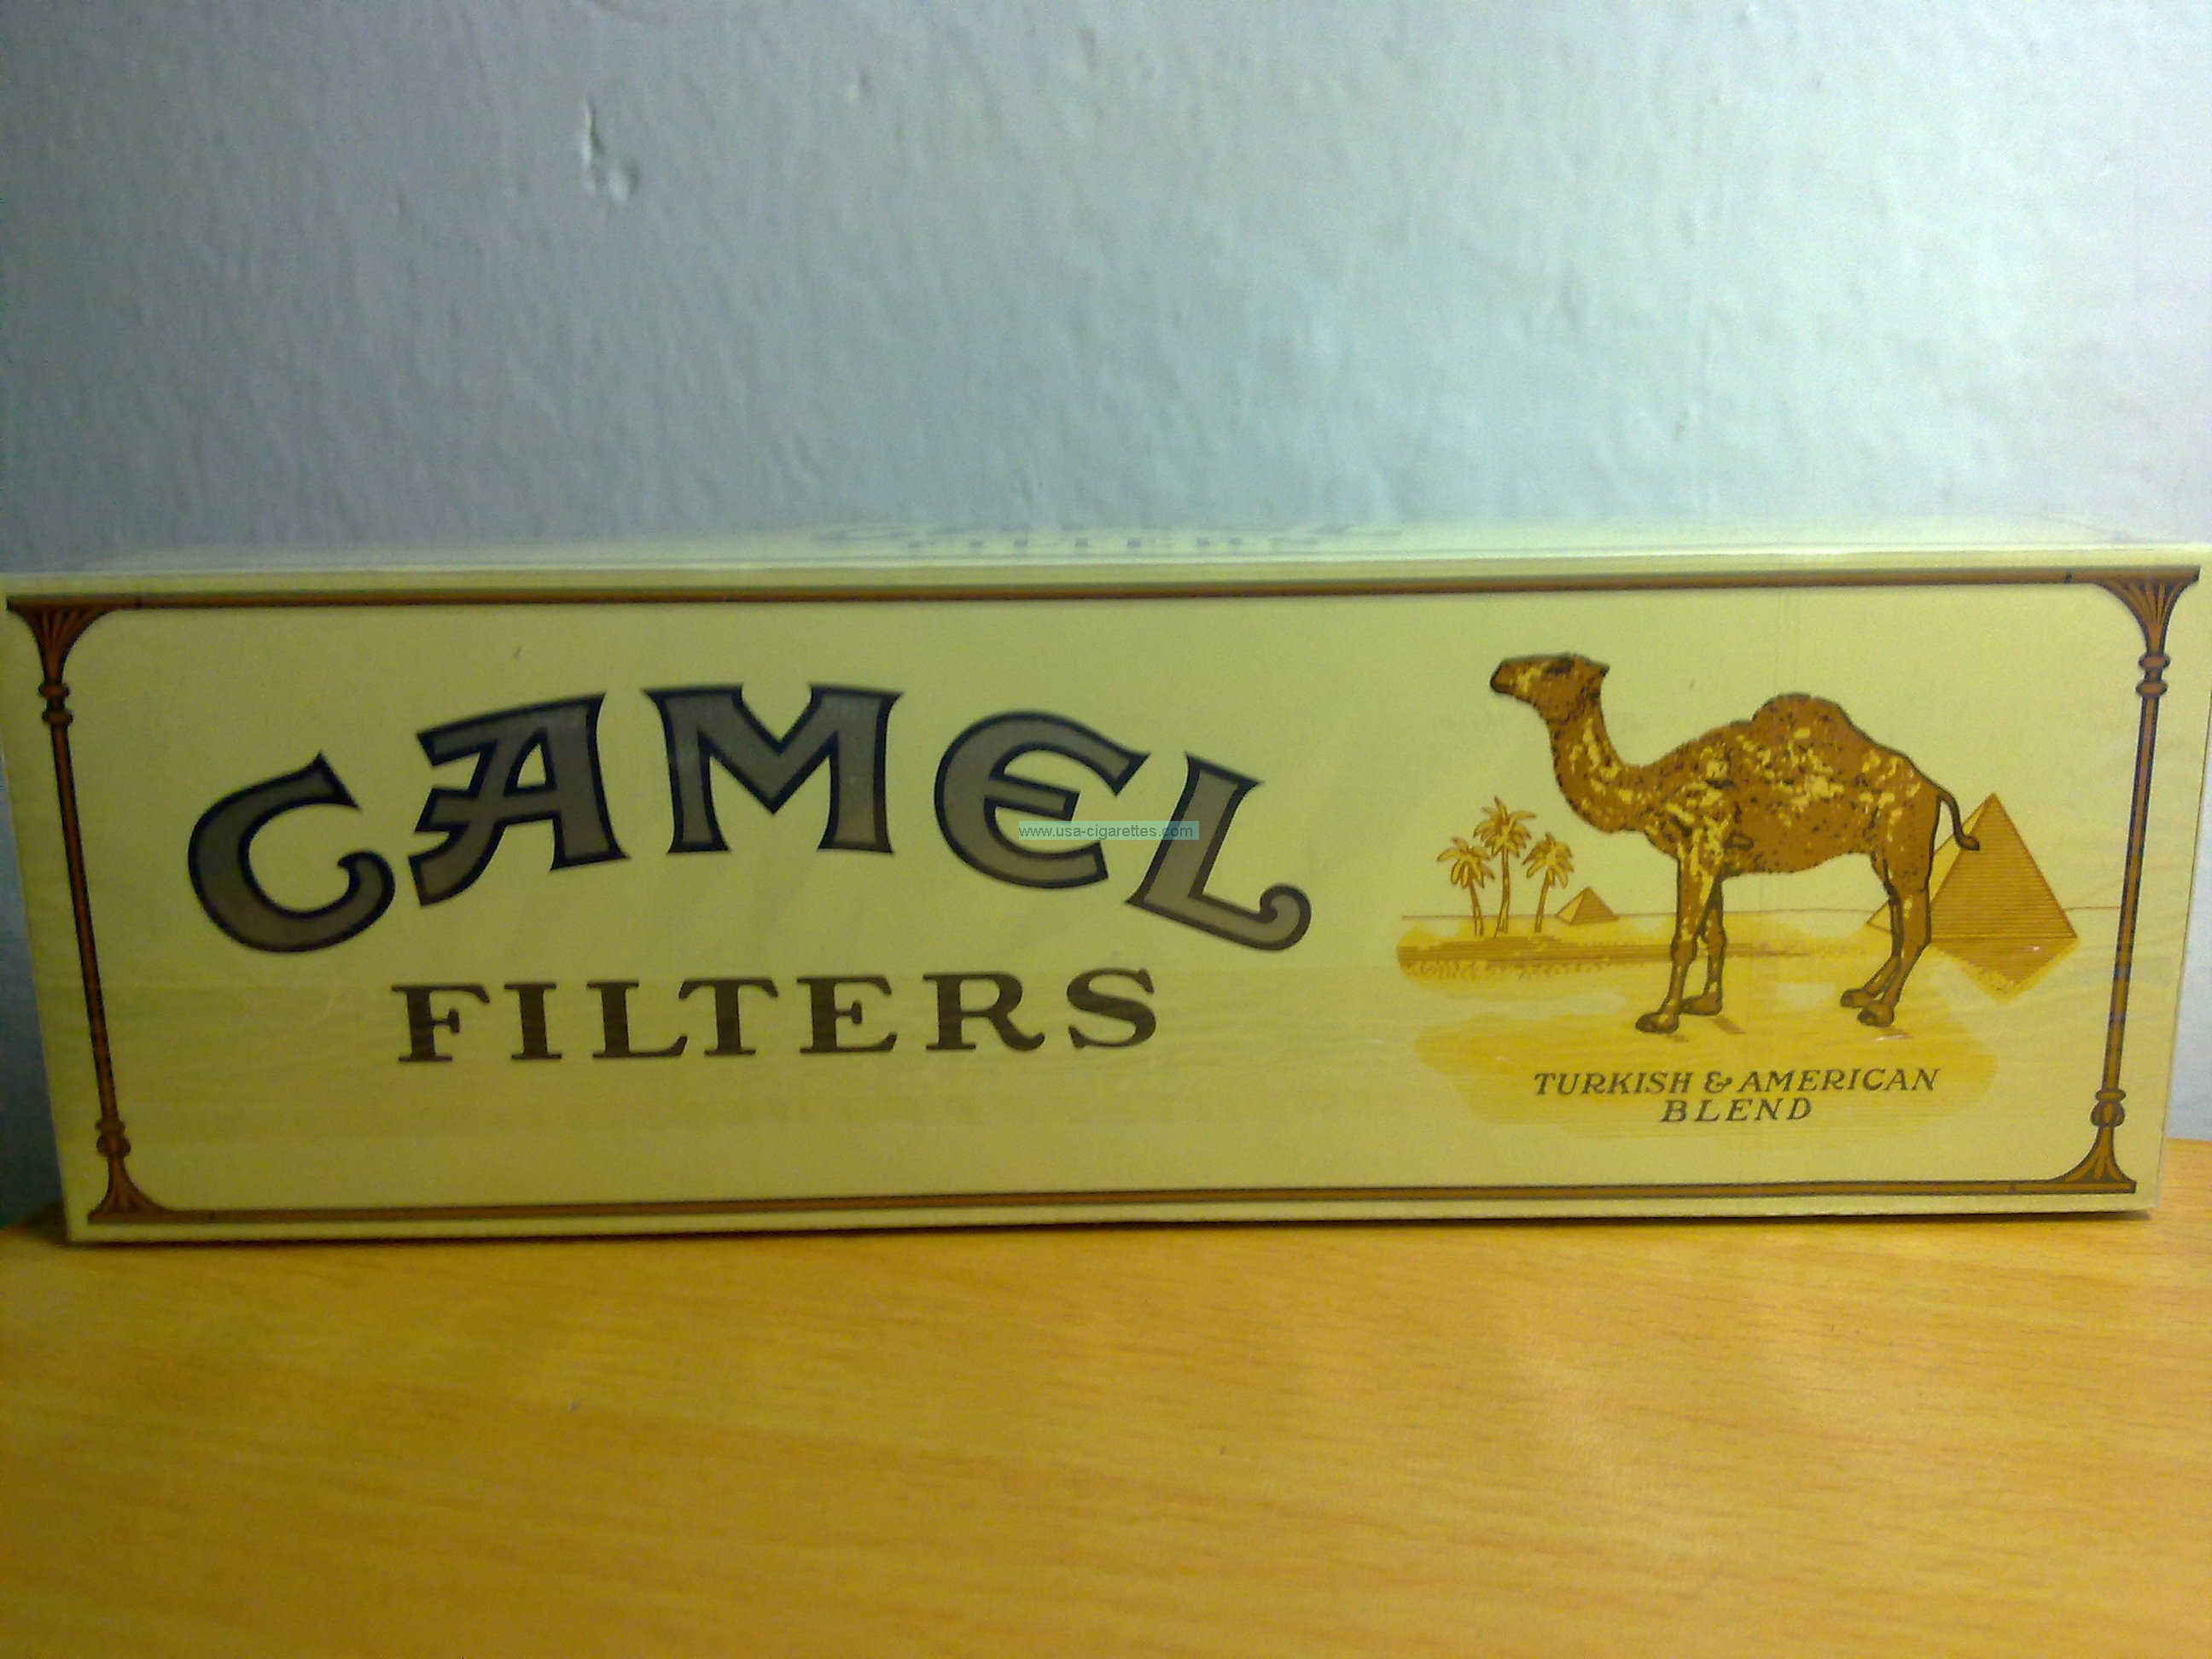 camel filters gold cigarettes